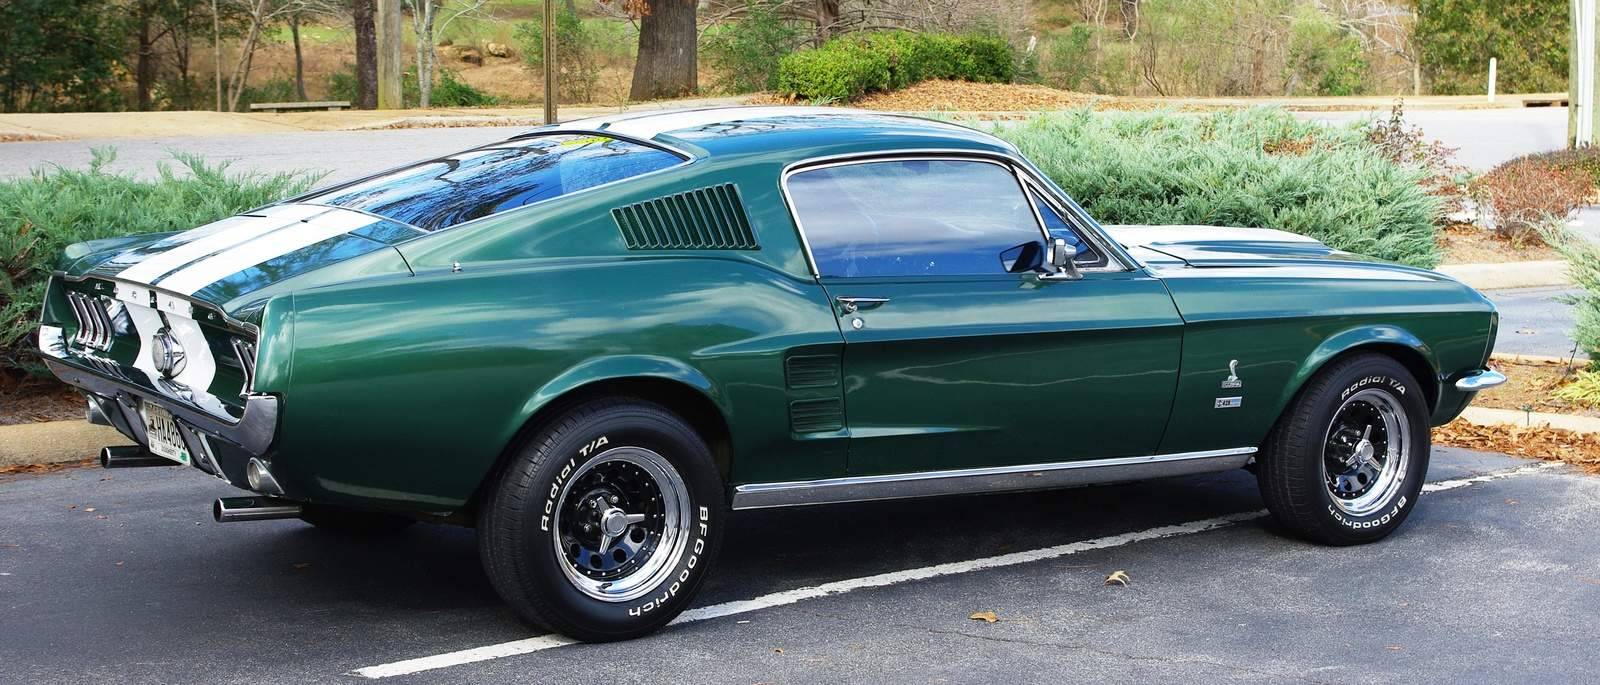 1967_ford_mustang_fastback.jpeg